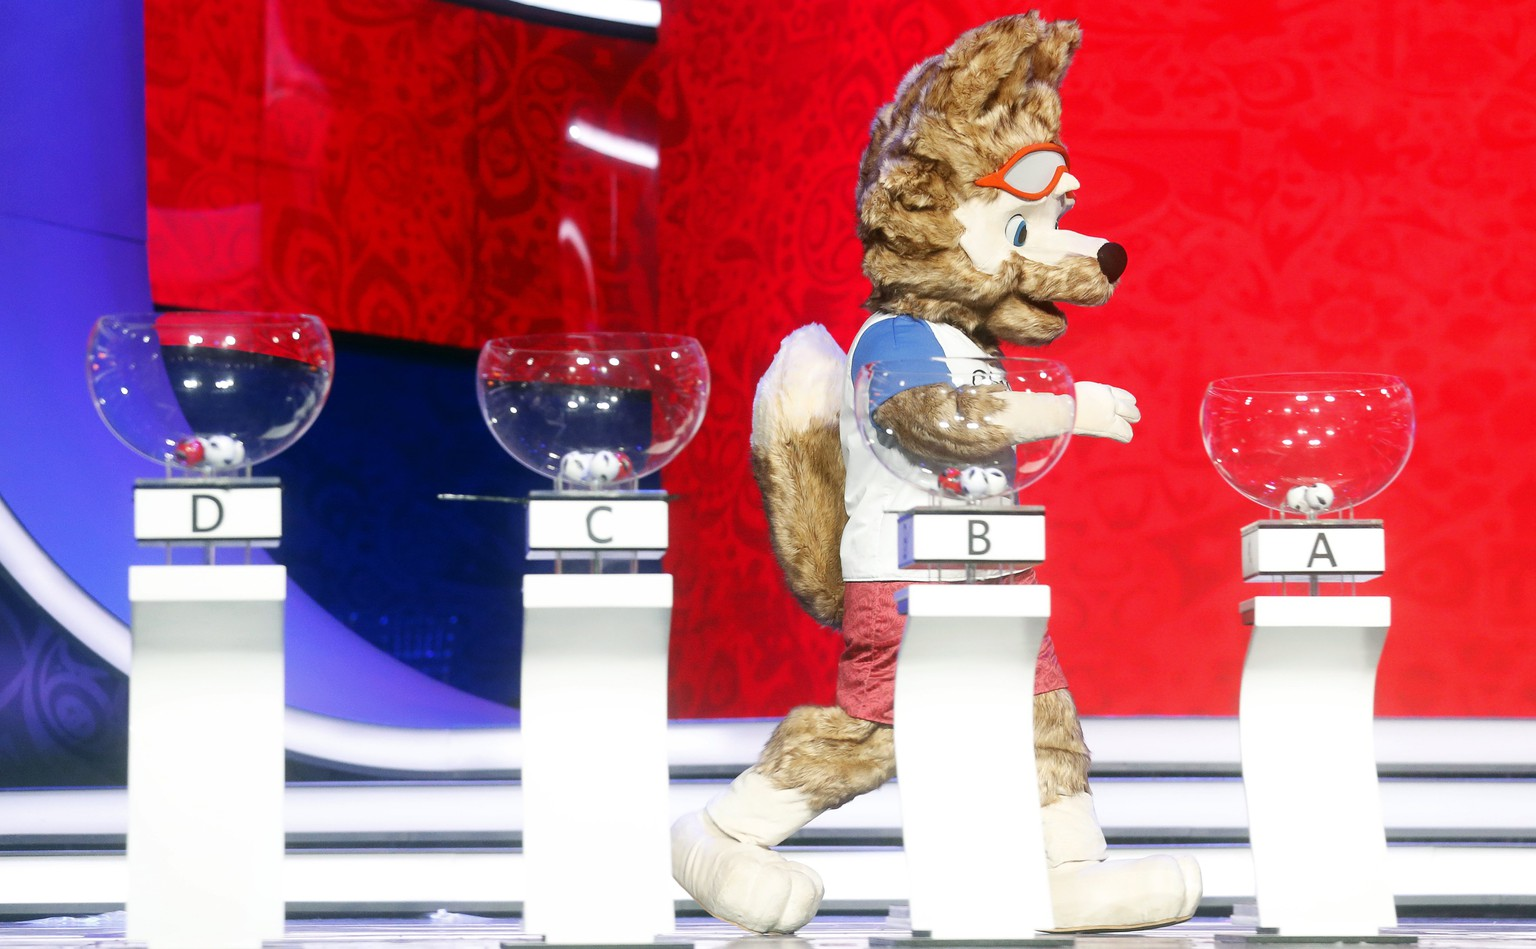 epa06357444 The official mascot of the FIFA World Cup 2018, the wolf Zabivaka, attends a rehearse on stage for the FIFA World Cup 2018 Final Draw in the State Kremlin Palace in Moscow, Russia, 29 November 2017. The Final Draw for the FIFA World Cup 2018 in Russia will take place in Moscow on 01 December 2017.  EPA/SERGEI CHIRIKOV